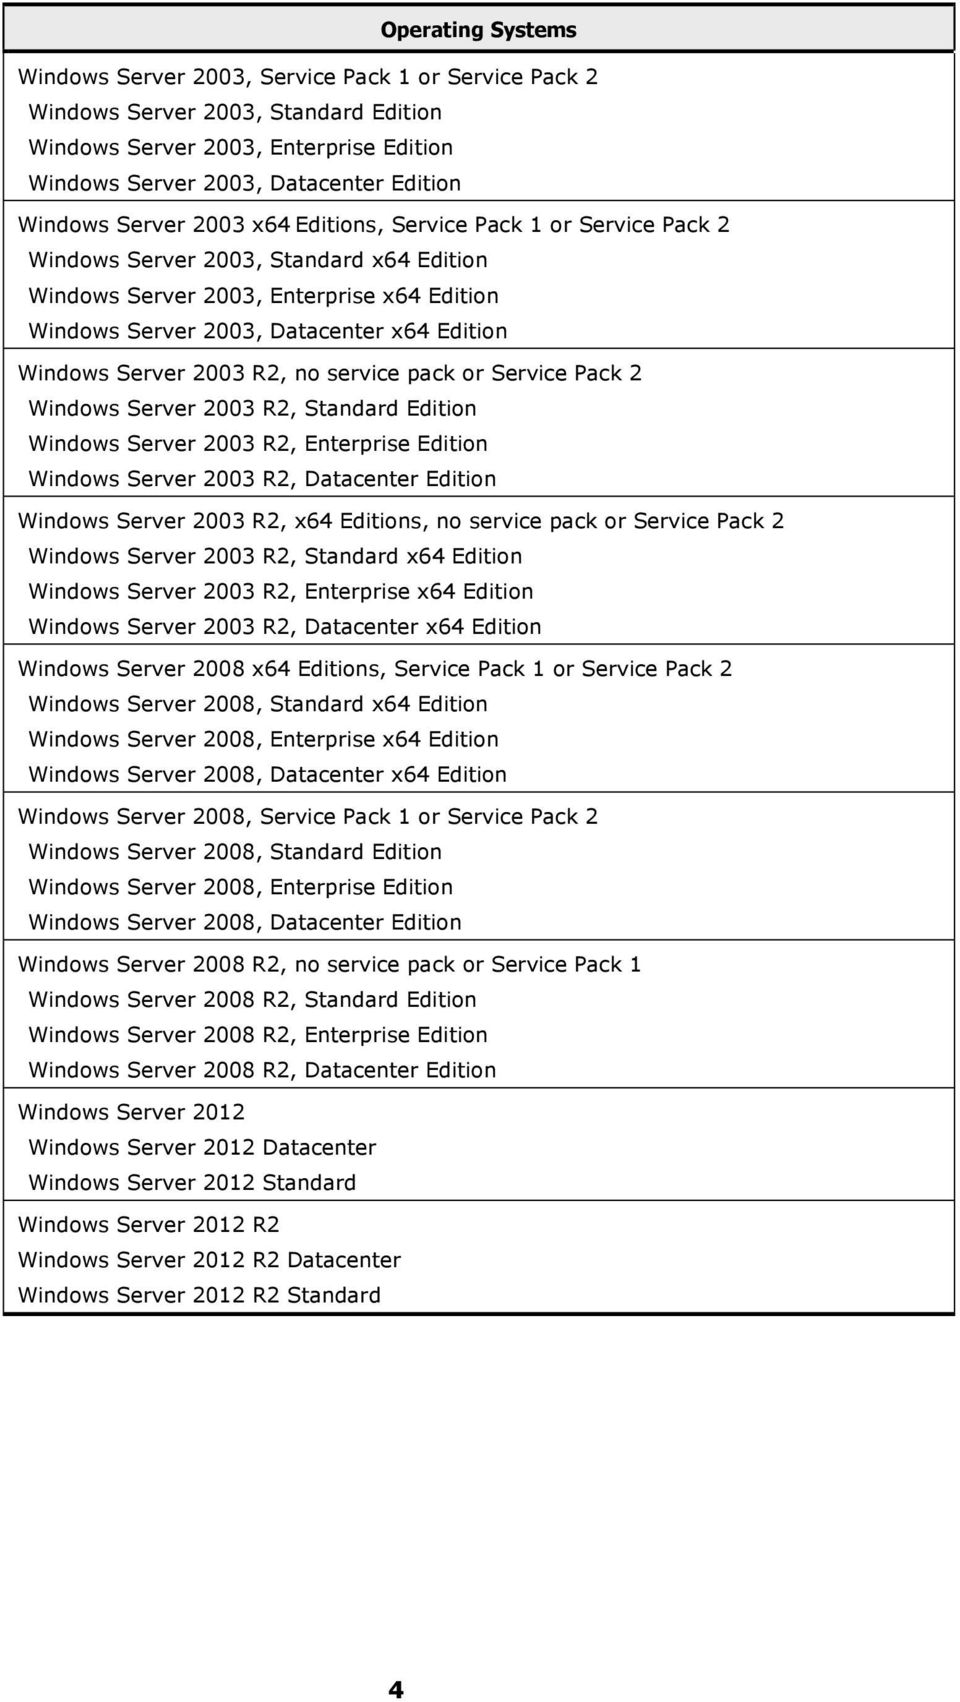 Server 2003 R2, no service pack or Service Pack 2 Windows Server 2003 R2, Standard Edition Windows Server 2003 R2, Enterprise Edition Windows Server 2003 R2, Datacenter Edition Windows Server 2003